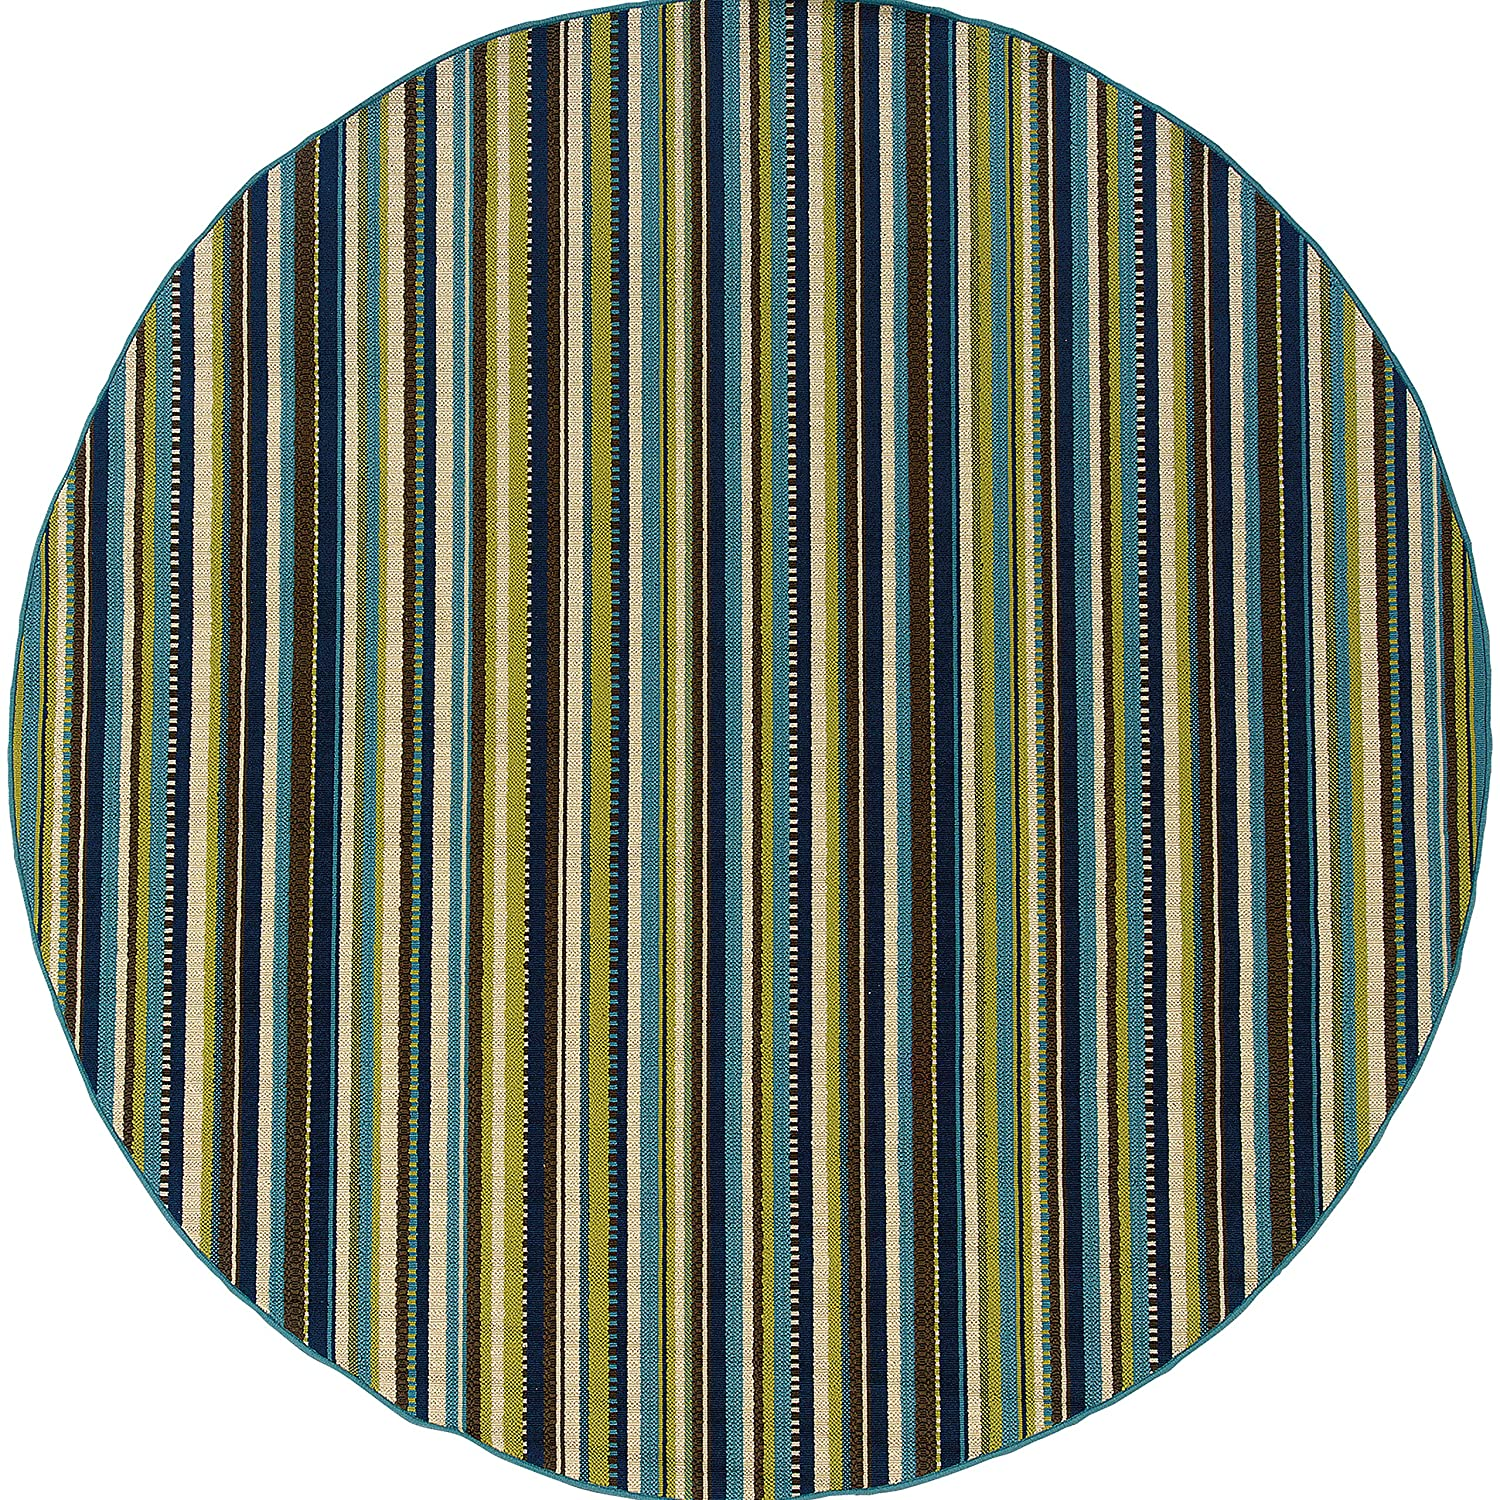 Christopher Knight Home CK-X4001 Corisco Stripe Indoor//Outdoor Area Rug 1ft 9in X 3ft 9in Blue,Brown